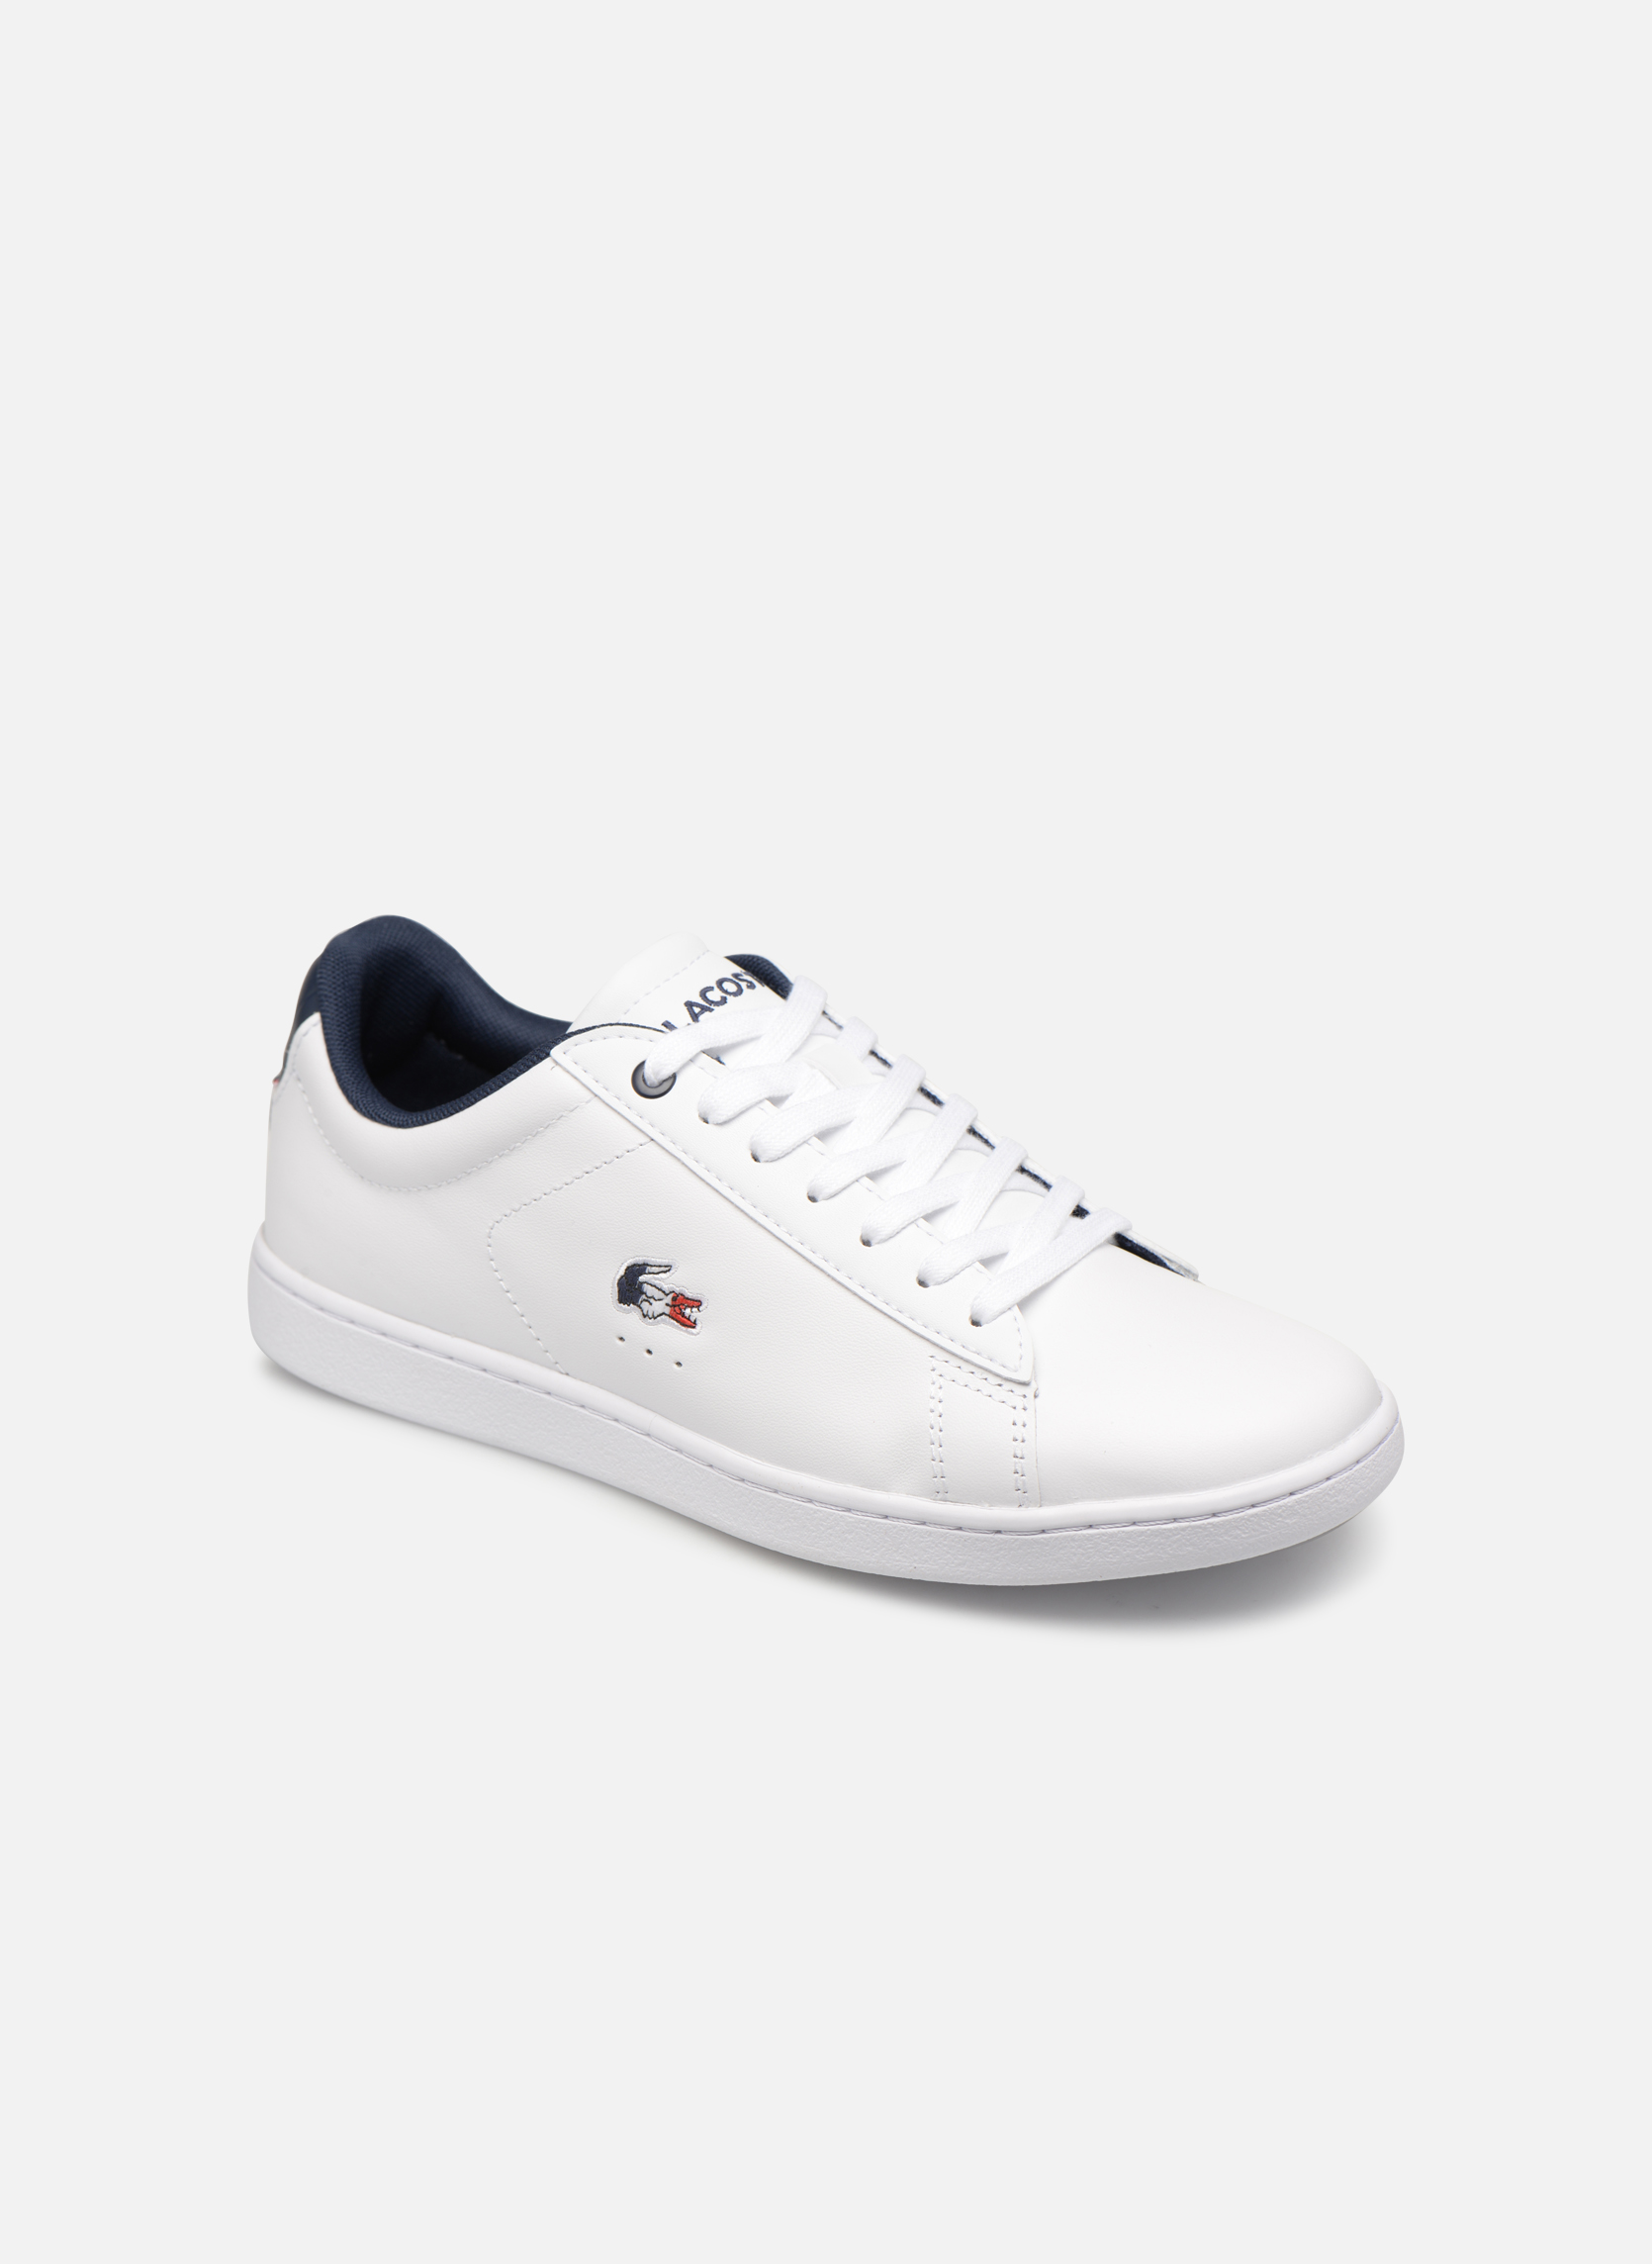 Sneakers Carnaby Evo 119 7 Sfa by Lacoste